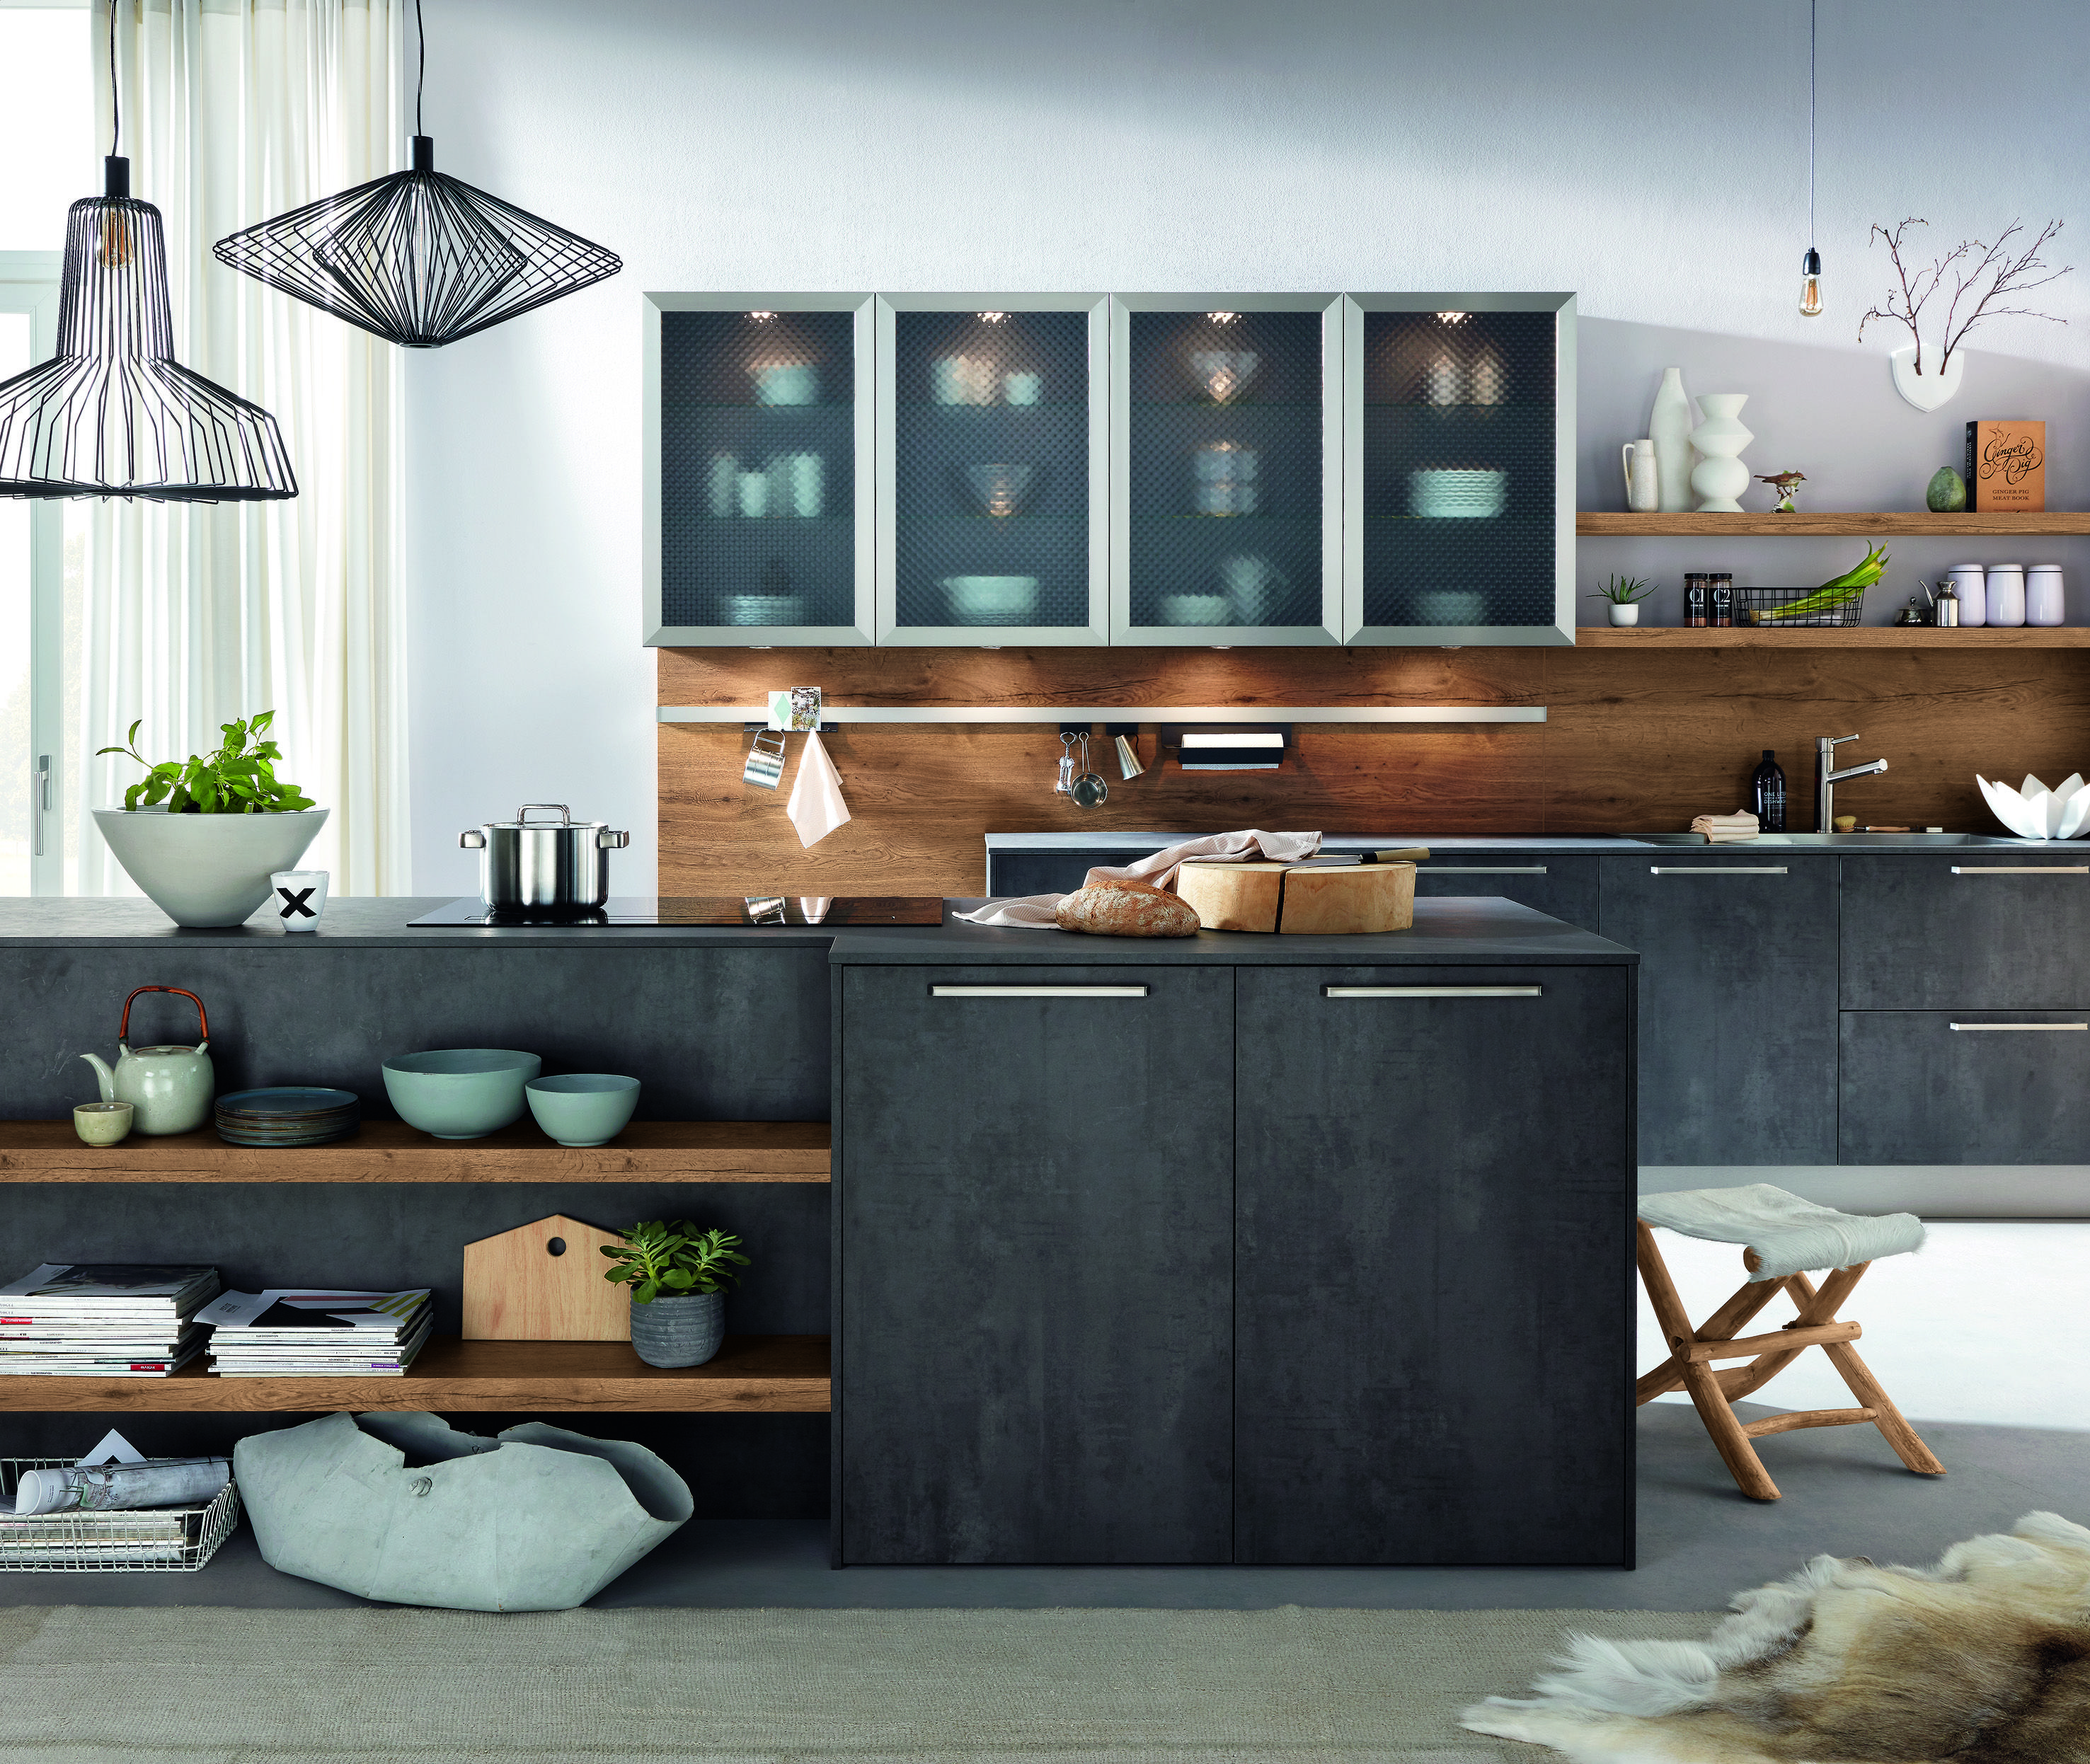 German Kitchen Designs: Pin By Culina+Balneo On Kitchens